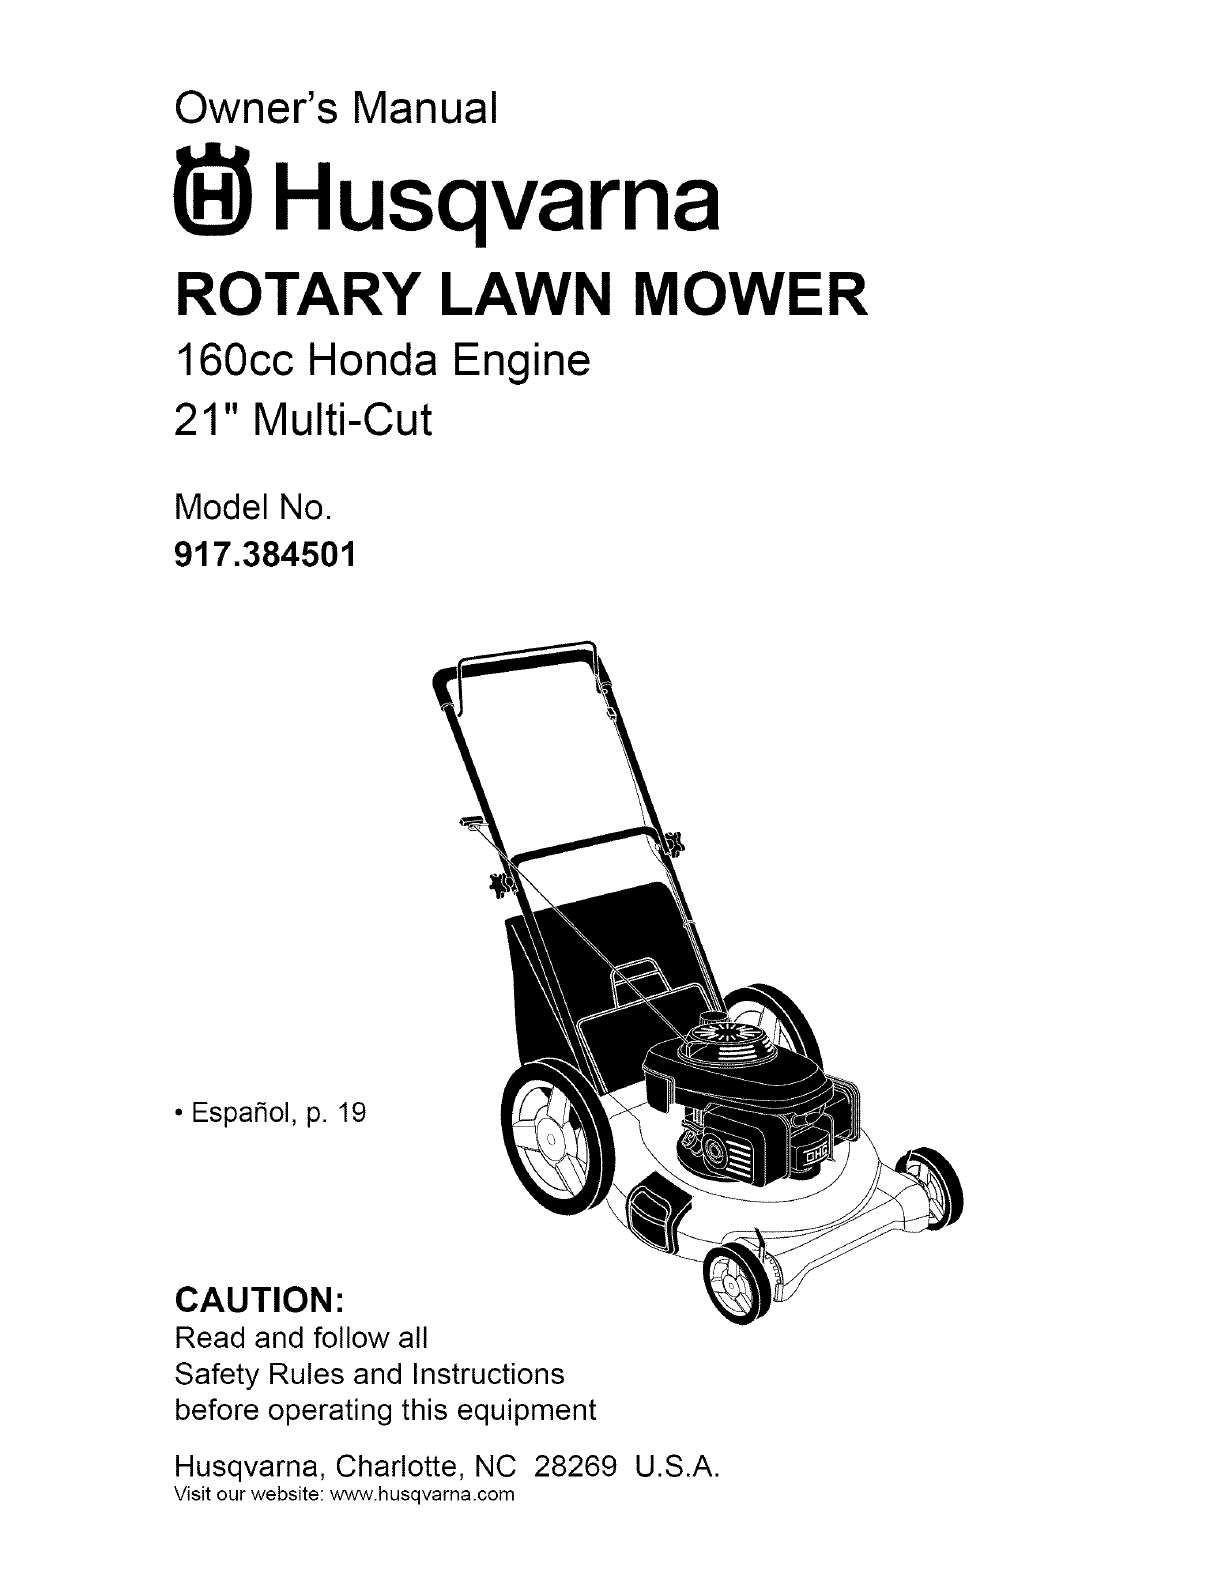 husqvarna 917384501 user manual lawn mower manuals and guides l0704326 rh  usermanual wiki husqvarna lawn mower parts near me husqvarna lawn mower  parts ...